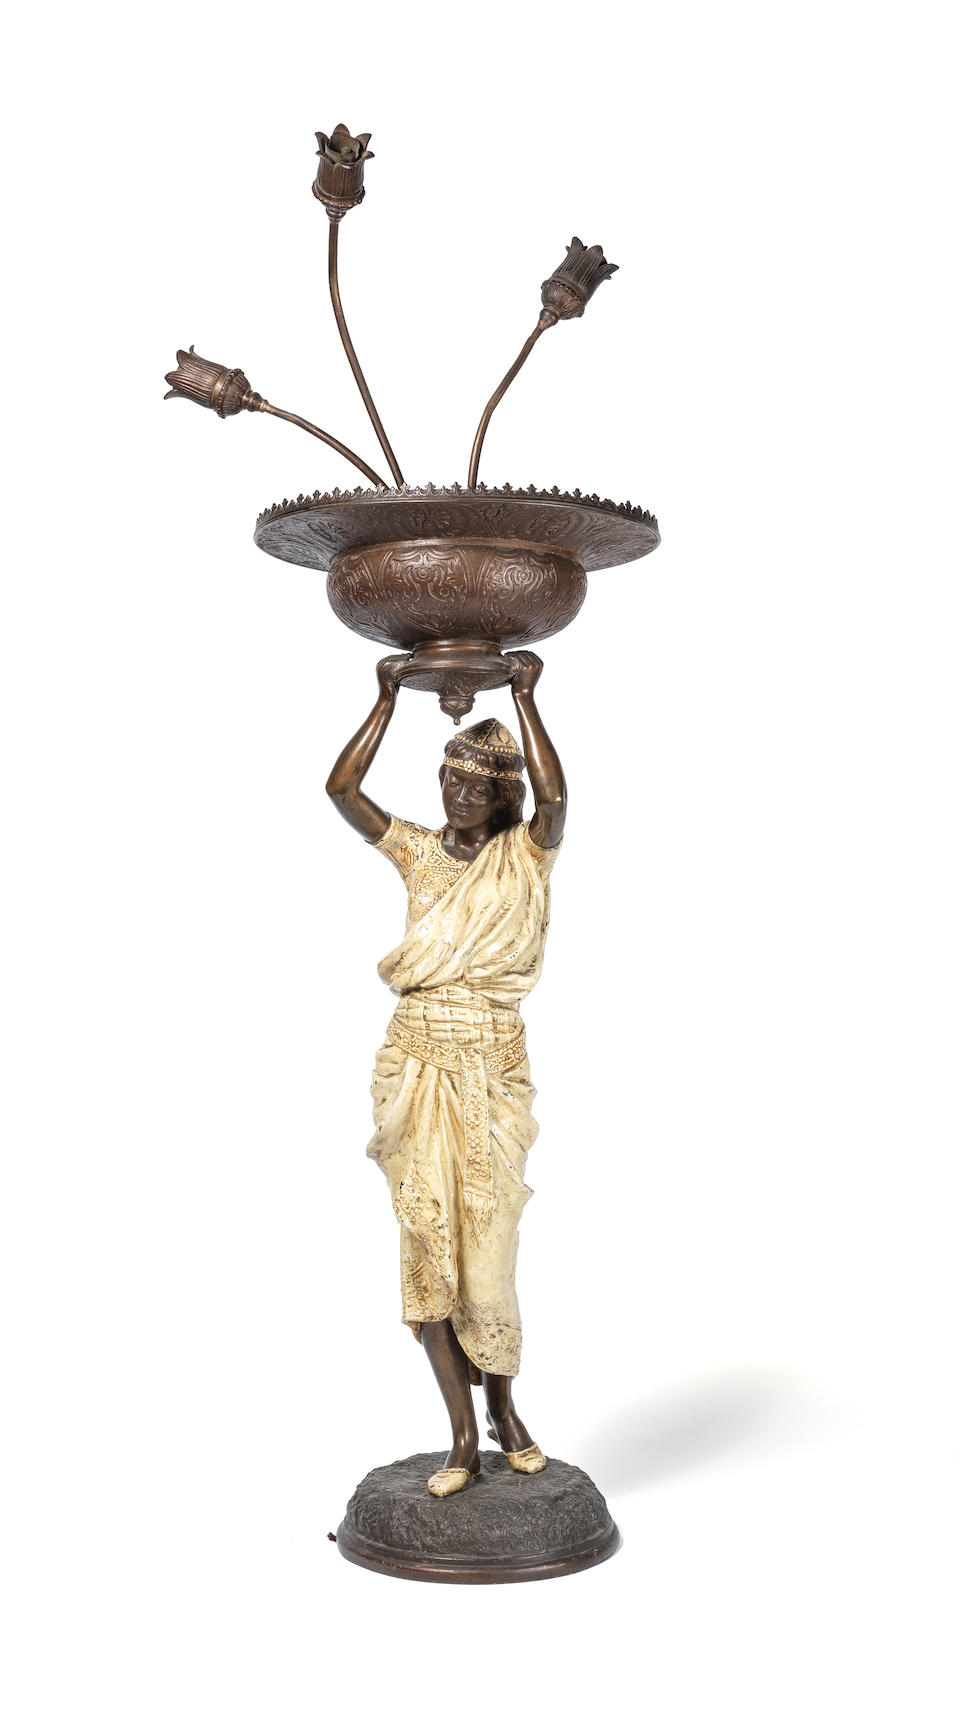 Louis Hottot (French, 1829-1905): An early 20th century Austrian cold painted and patinated spelter Orientalist figural lamp